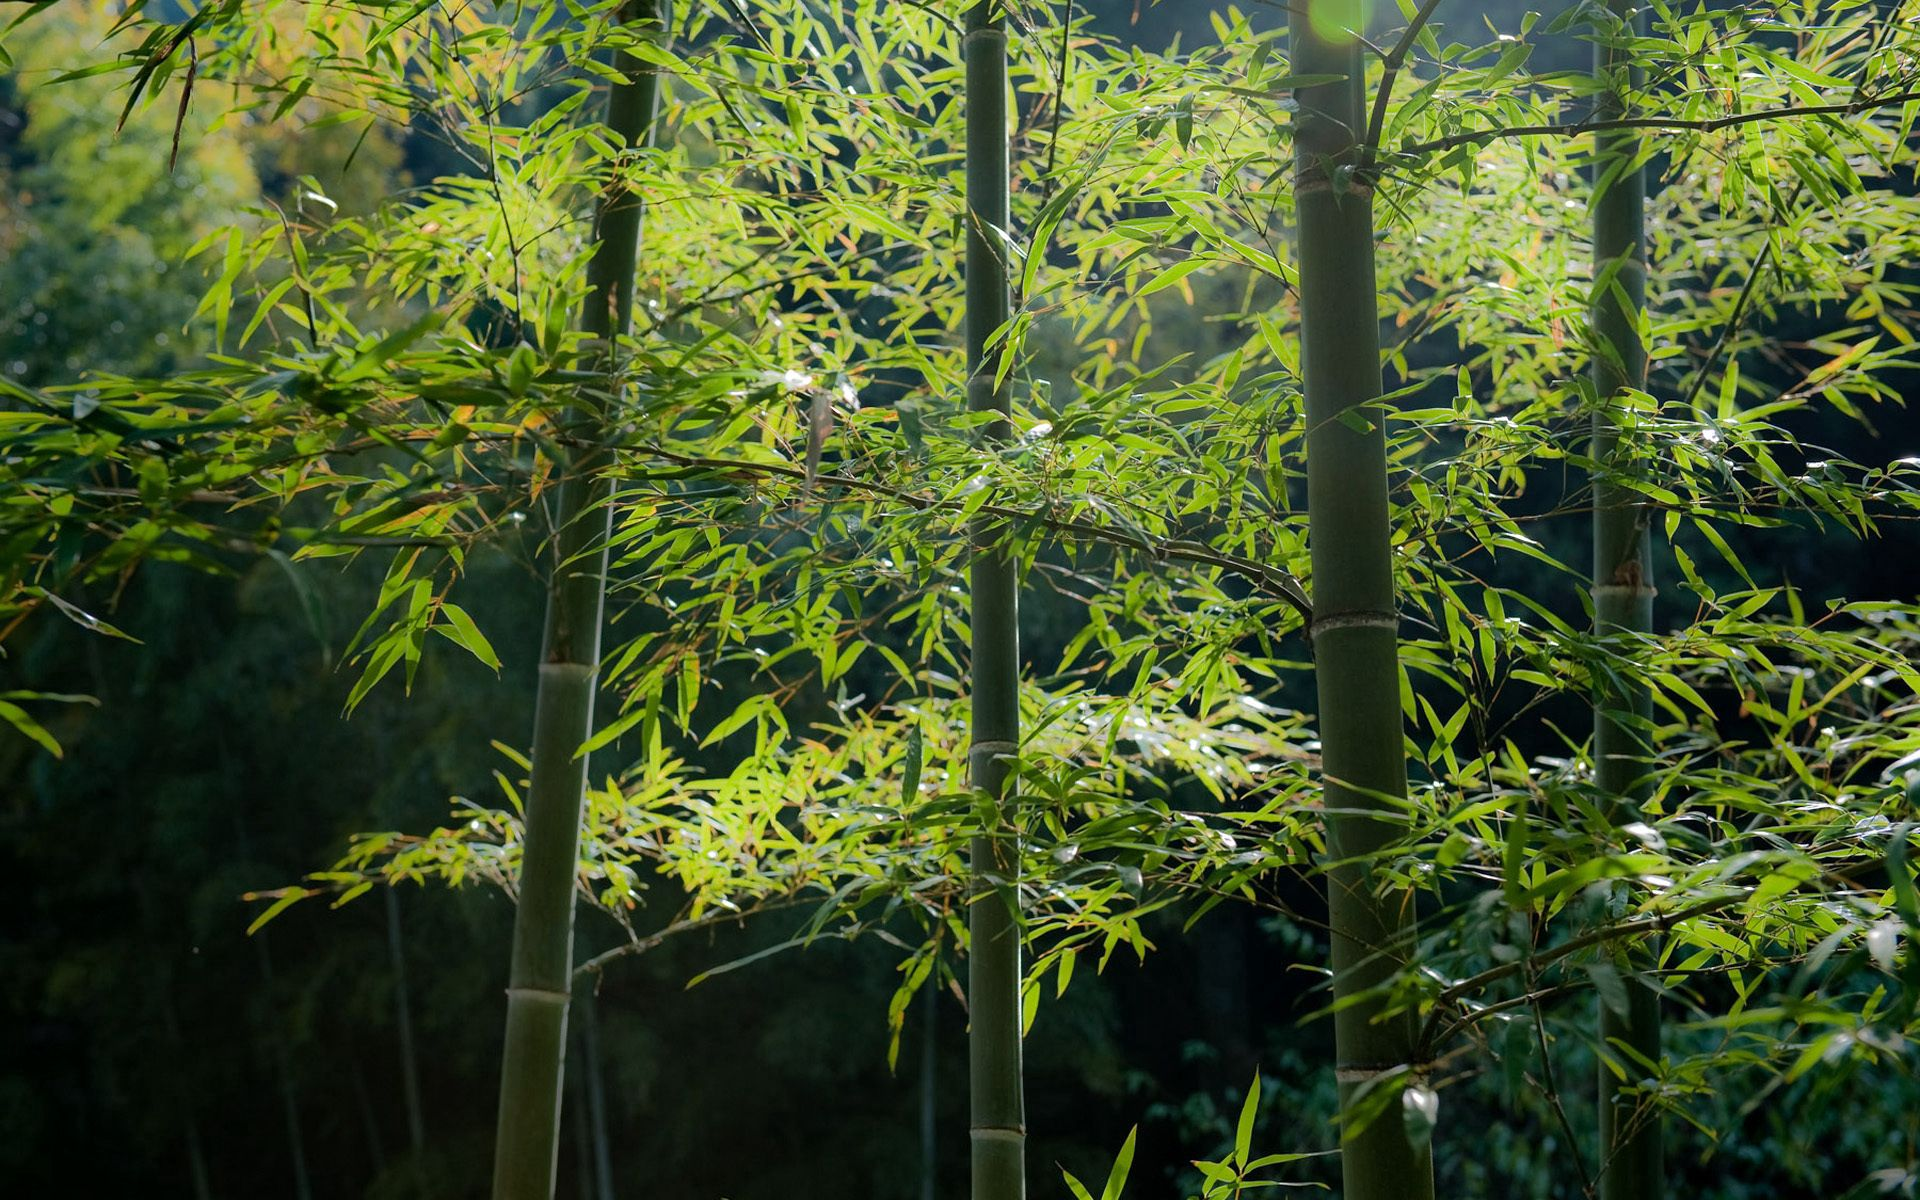 74994 download wallpaper Nature, Bamboo, Forest, Stems, Calmness, Tranquillity screensavers and pictures for free